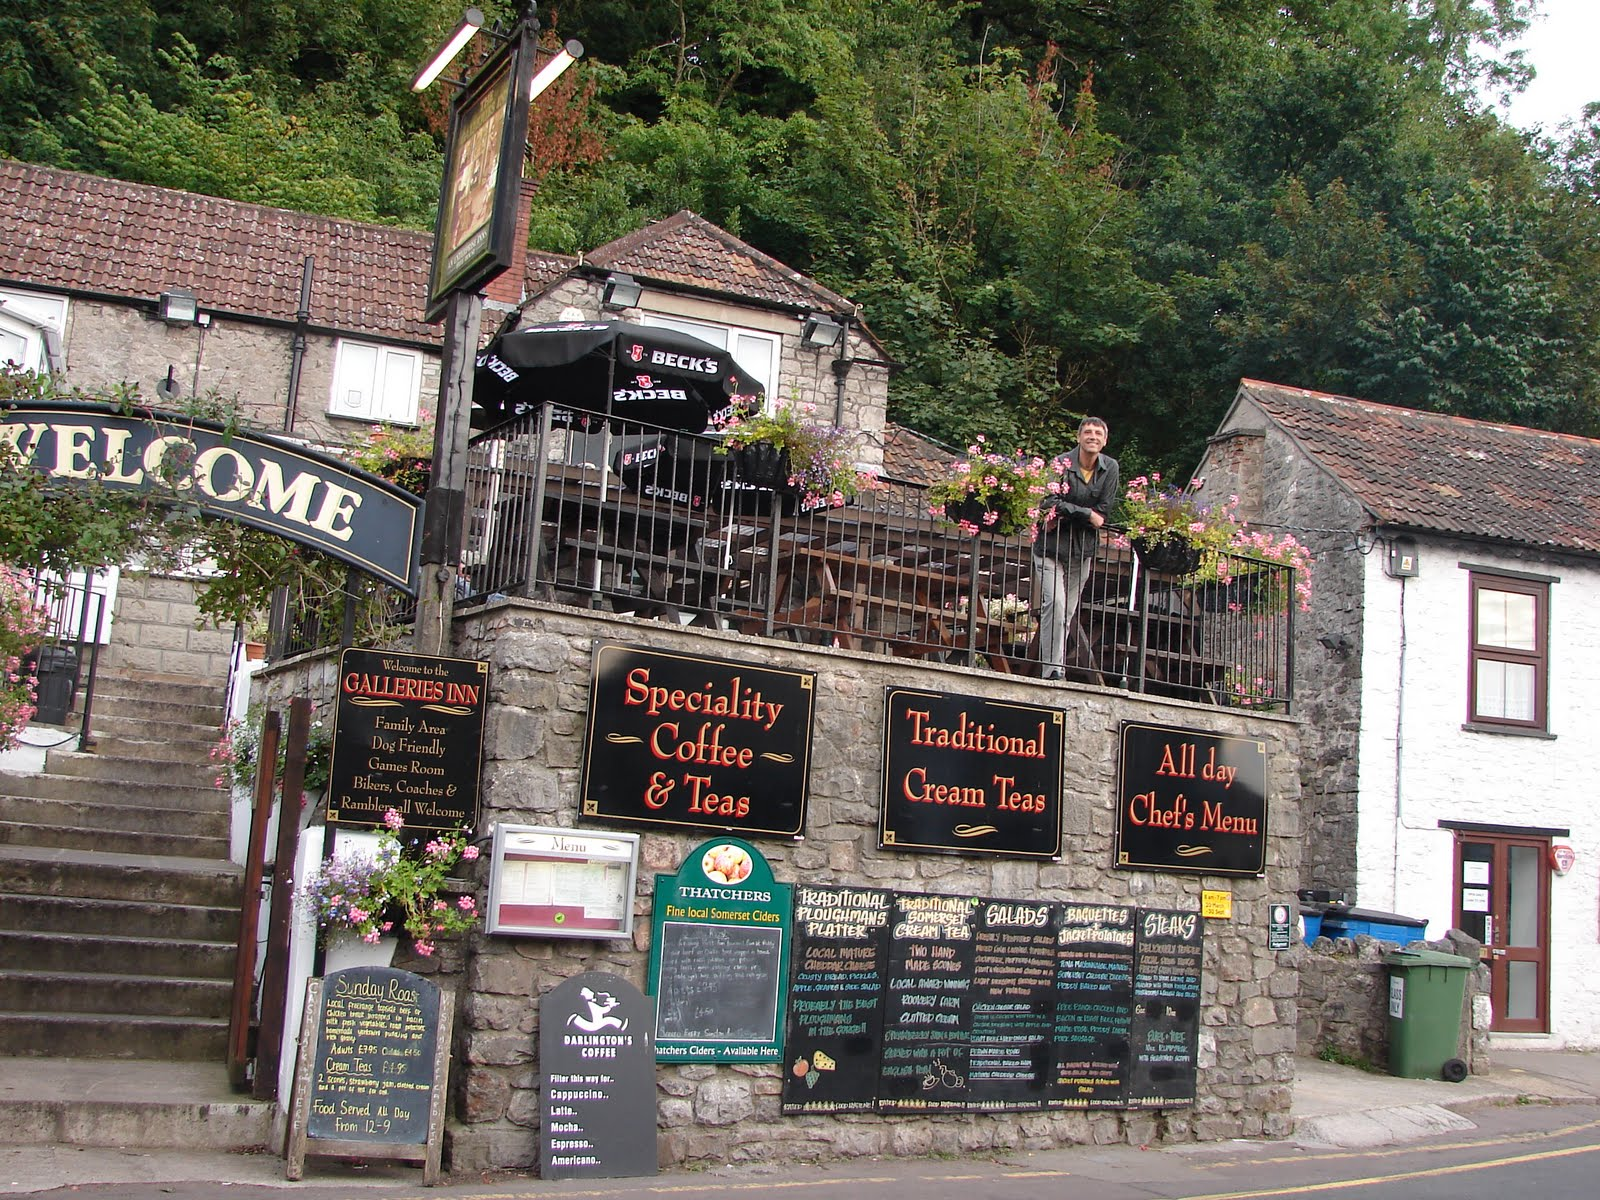 Our life in illinois cheddar gorge england 23rd 24th - Cheddar gorge hotels with swimming pools ...